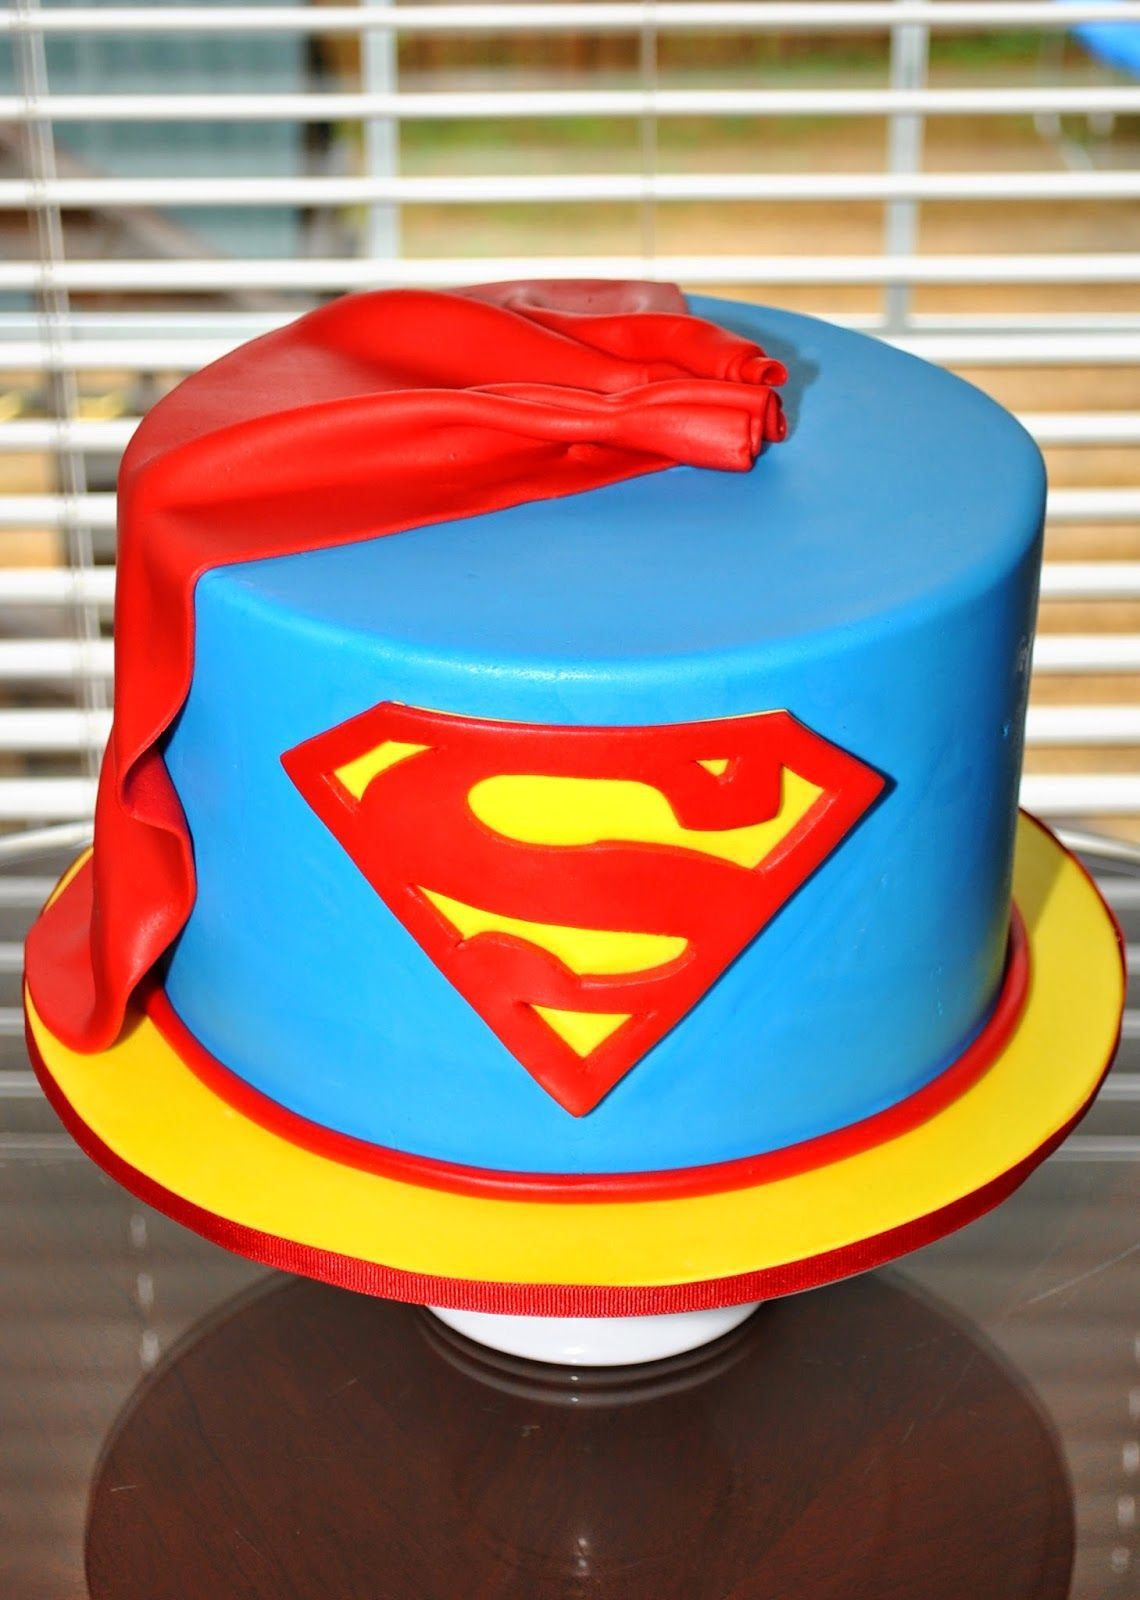 1000 ideas about superman cakes on pinterest batman cakes - Superman Cake Cake Ideas Pinterest Superman Cakes Cake And Birthdays